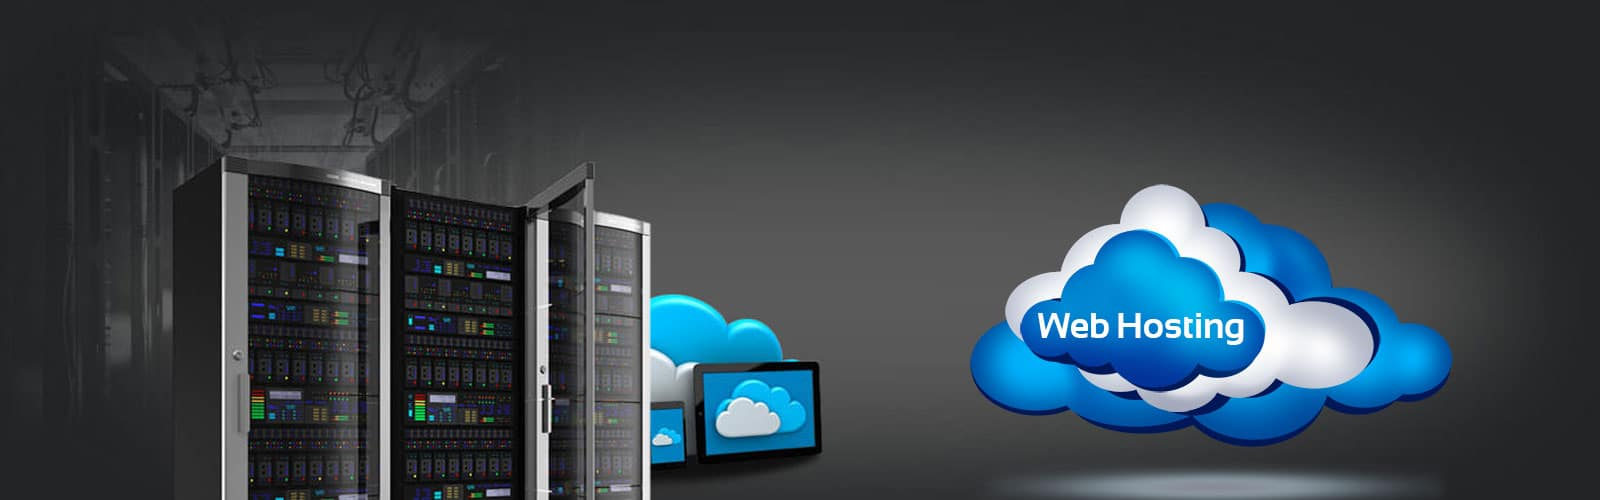 Web Hosting Business Platform